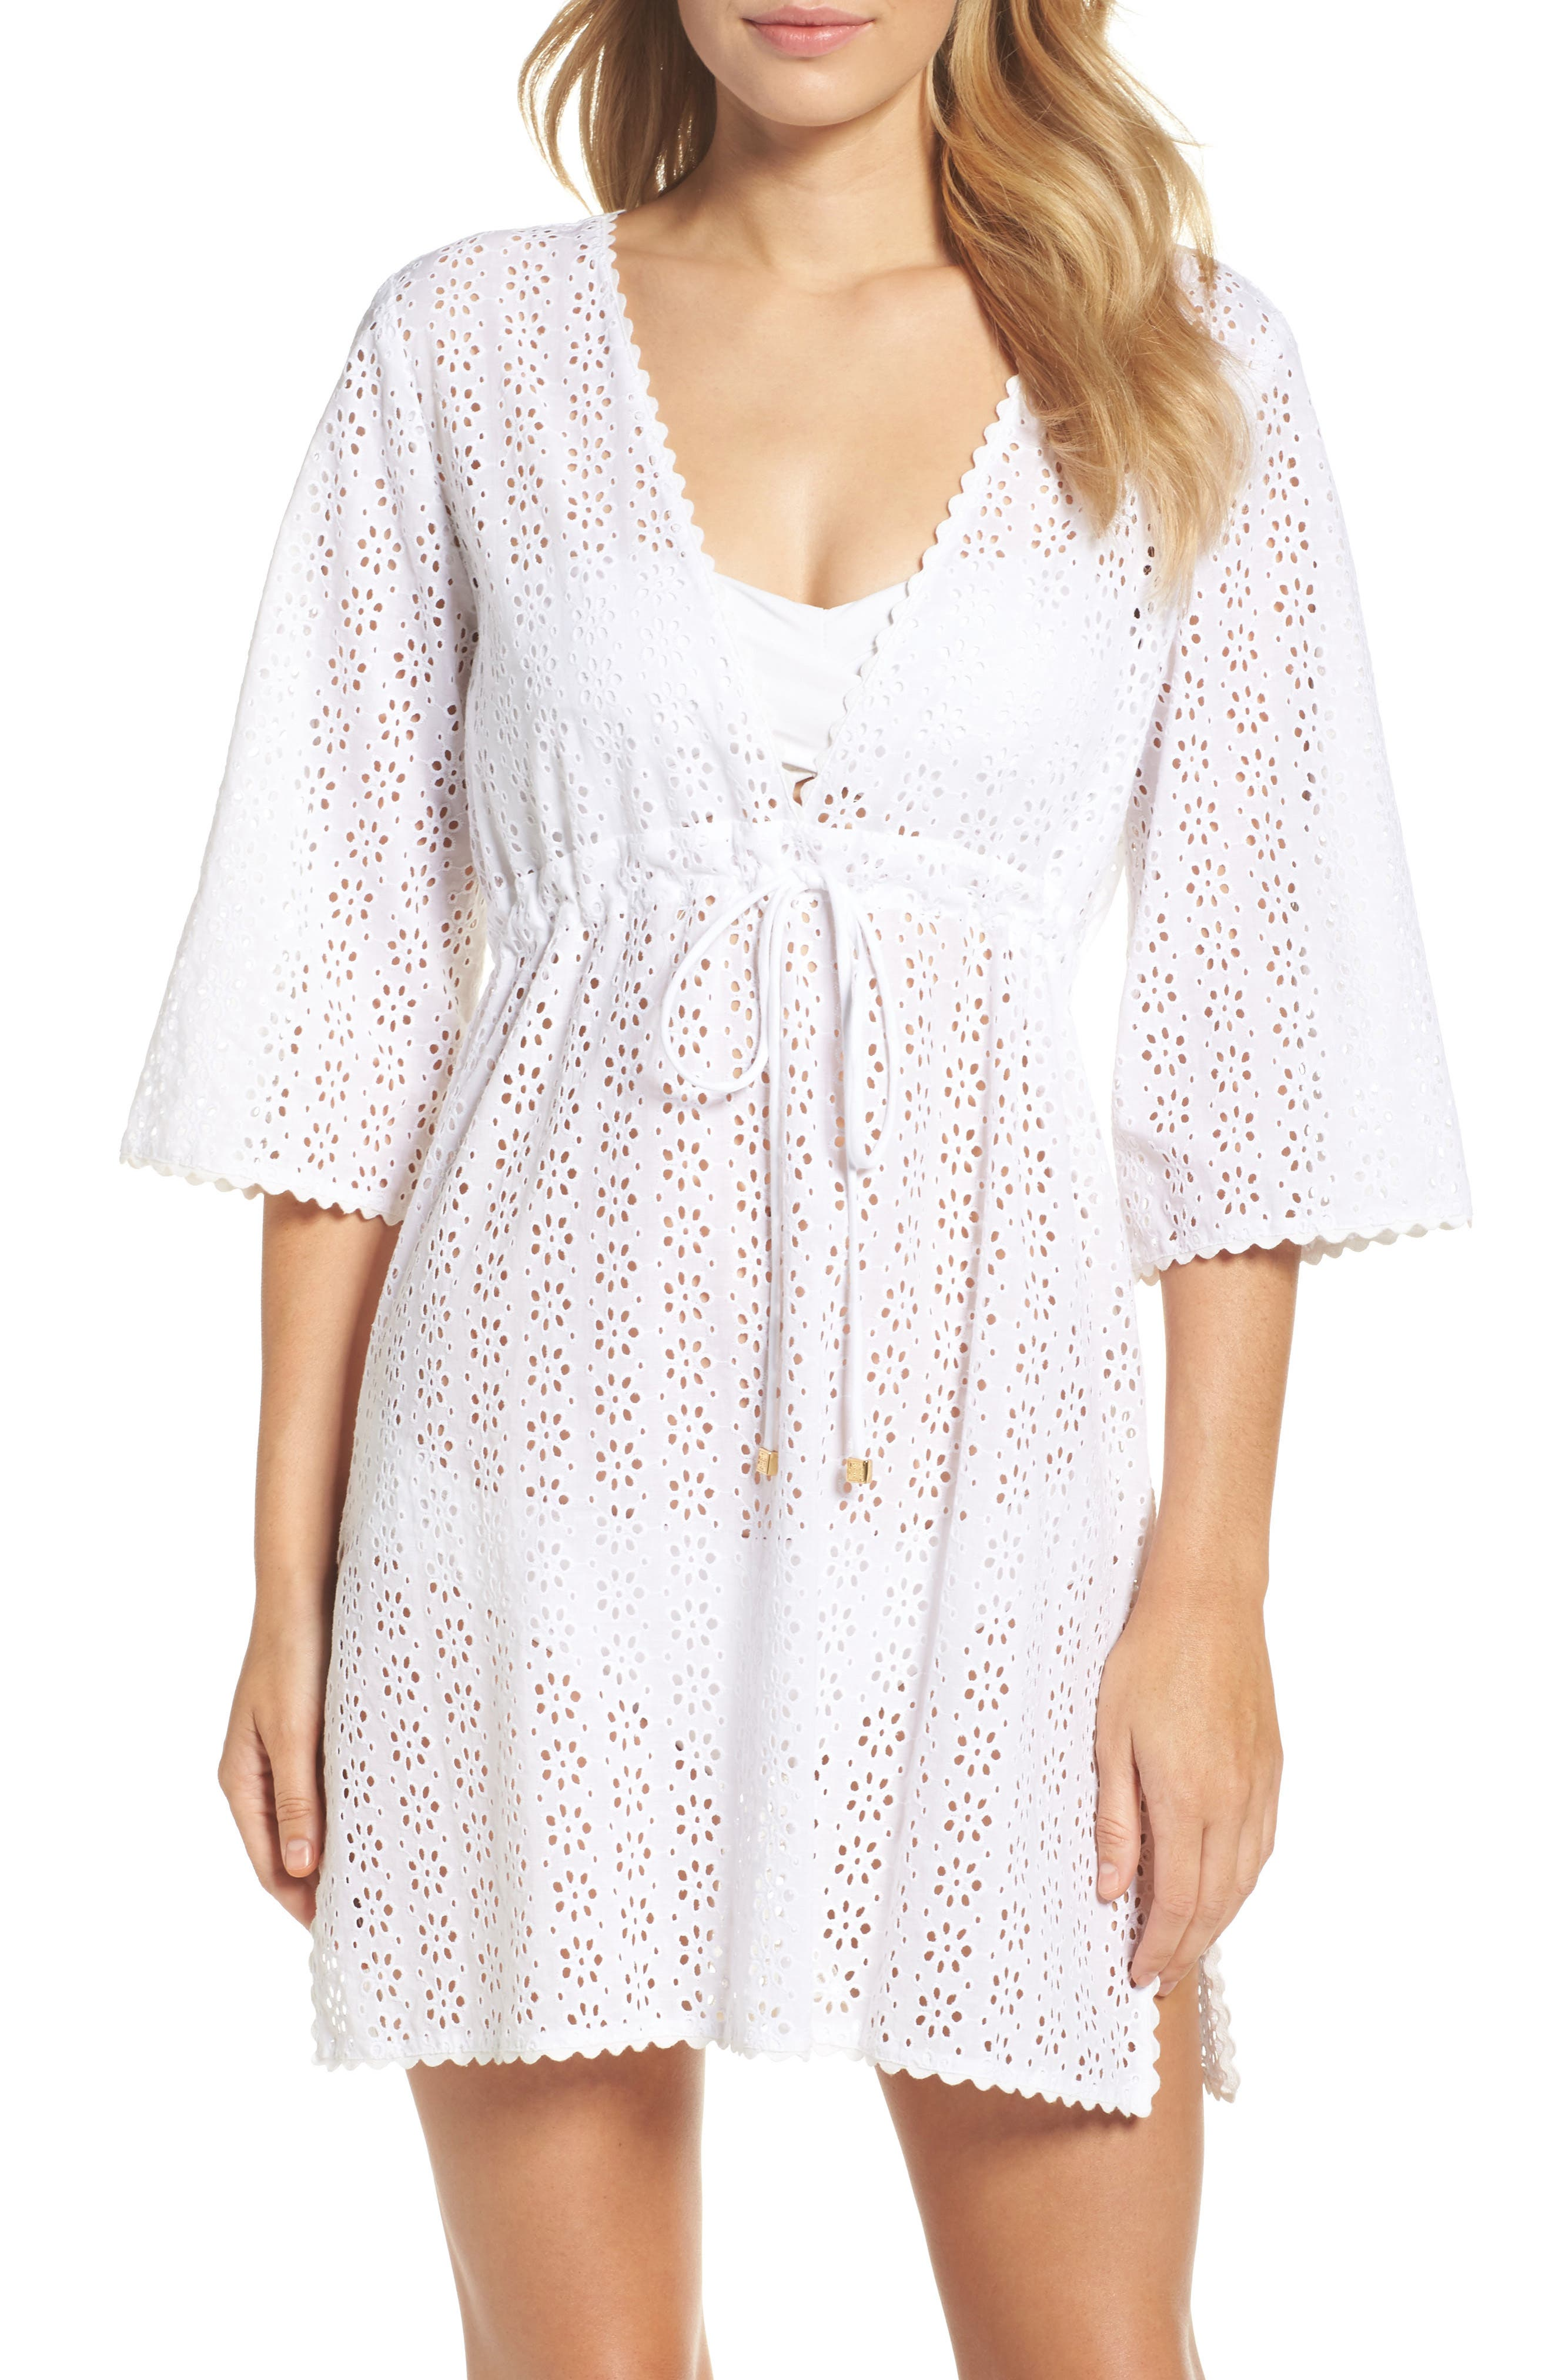 Main Image - Tory Burch Broderie Anglais Cover-Up Dress